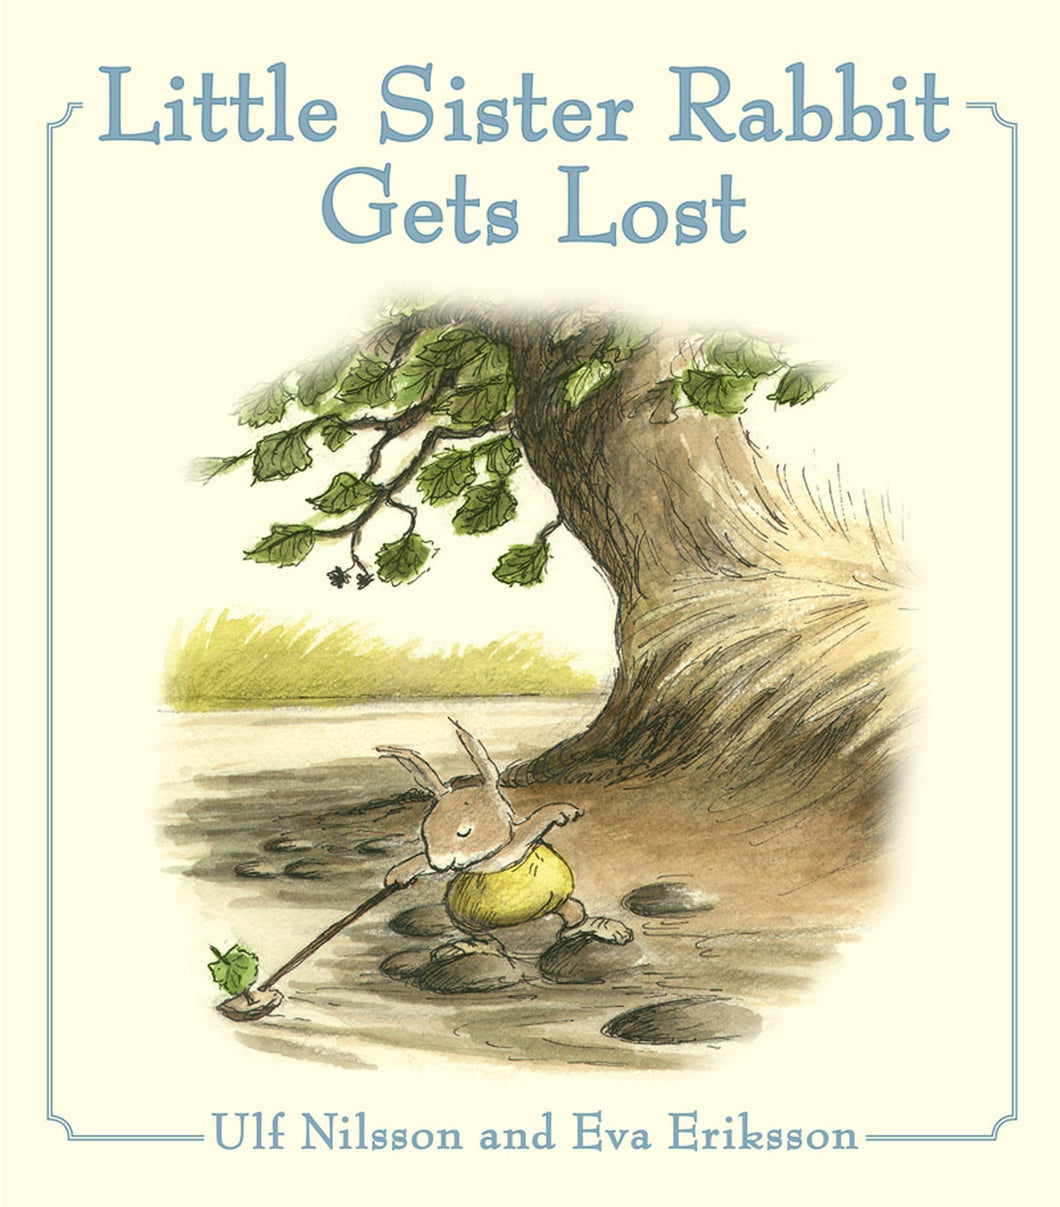 <i>Little Sister Rabbit Gets Lost</i> by Eva Eriksson and Ulf Nilsson